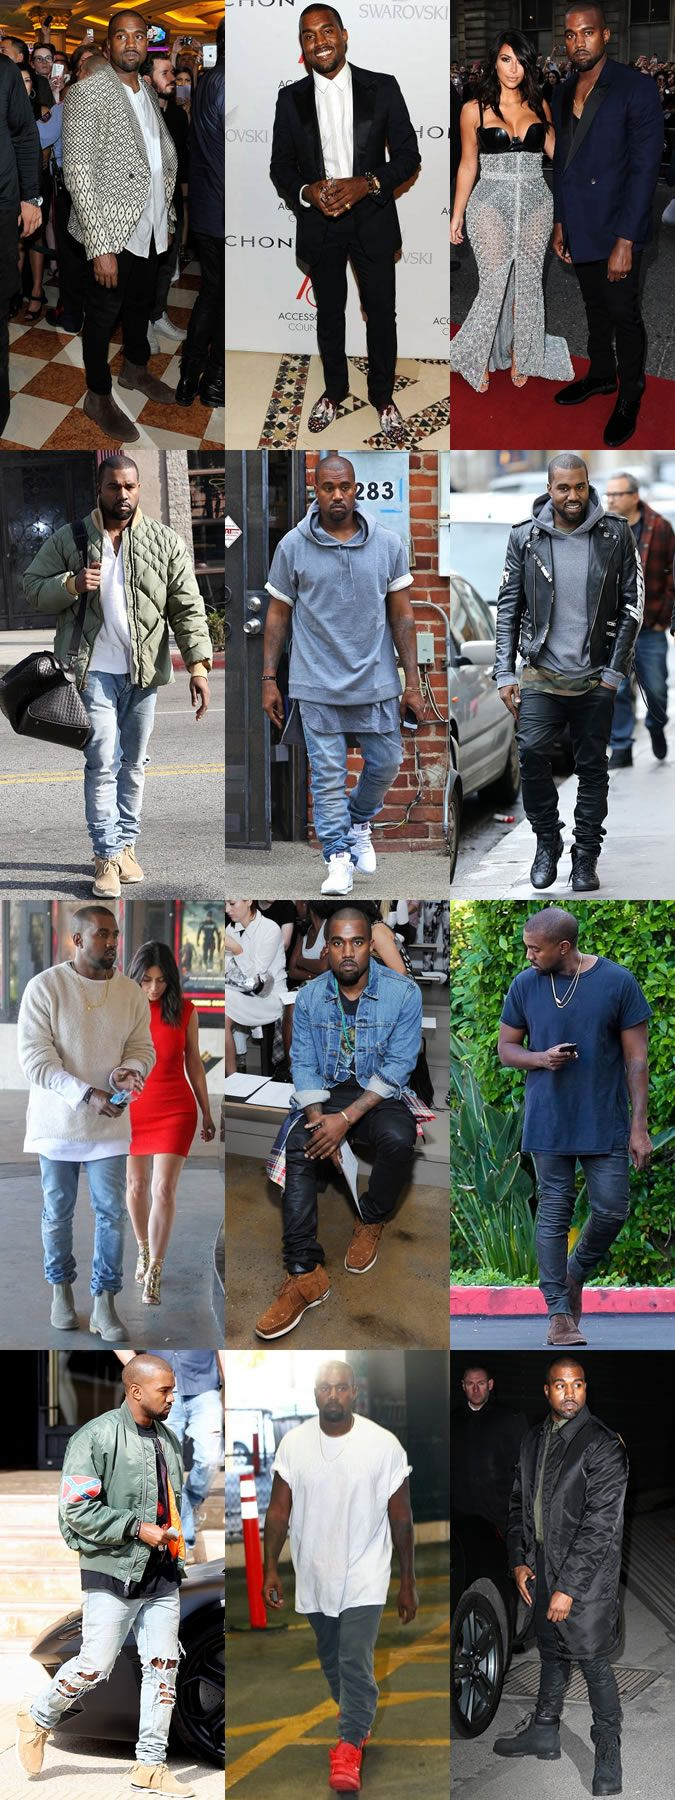 ITT i post stylish/fashionable stuff [PART 7] + how to save $$$ on clothes, shoes,etc - Page 267 - Bodybuilding.com Forums